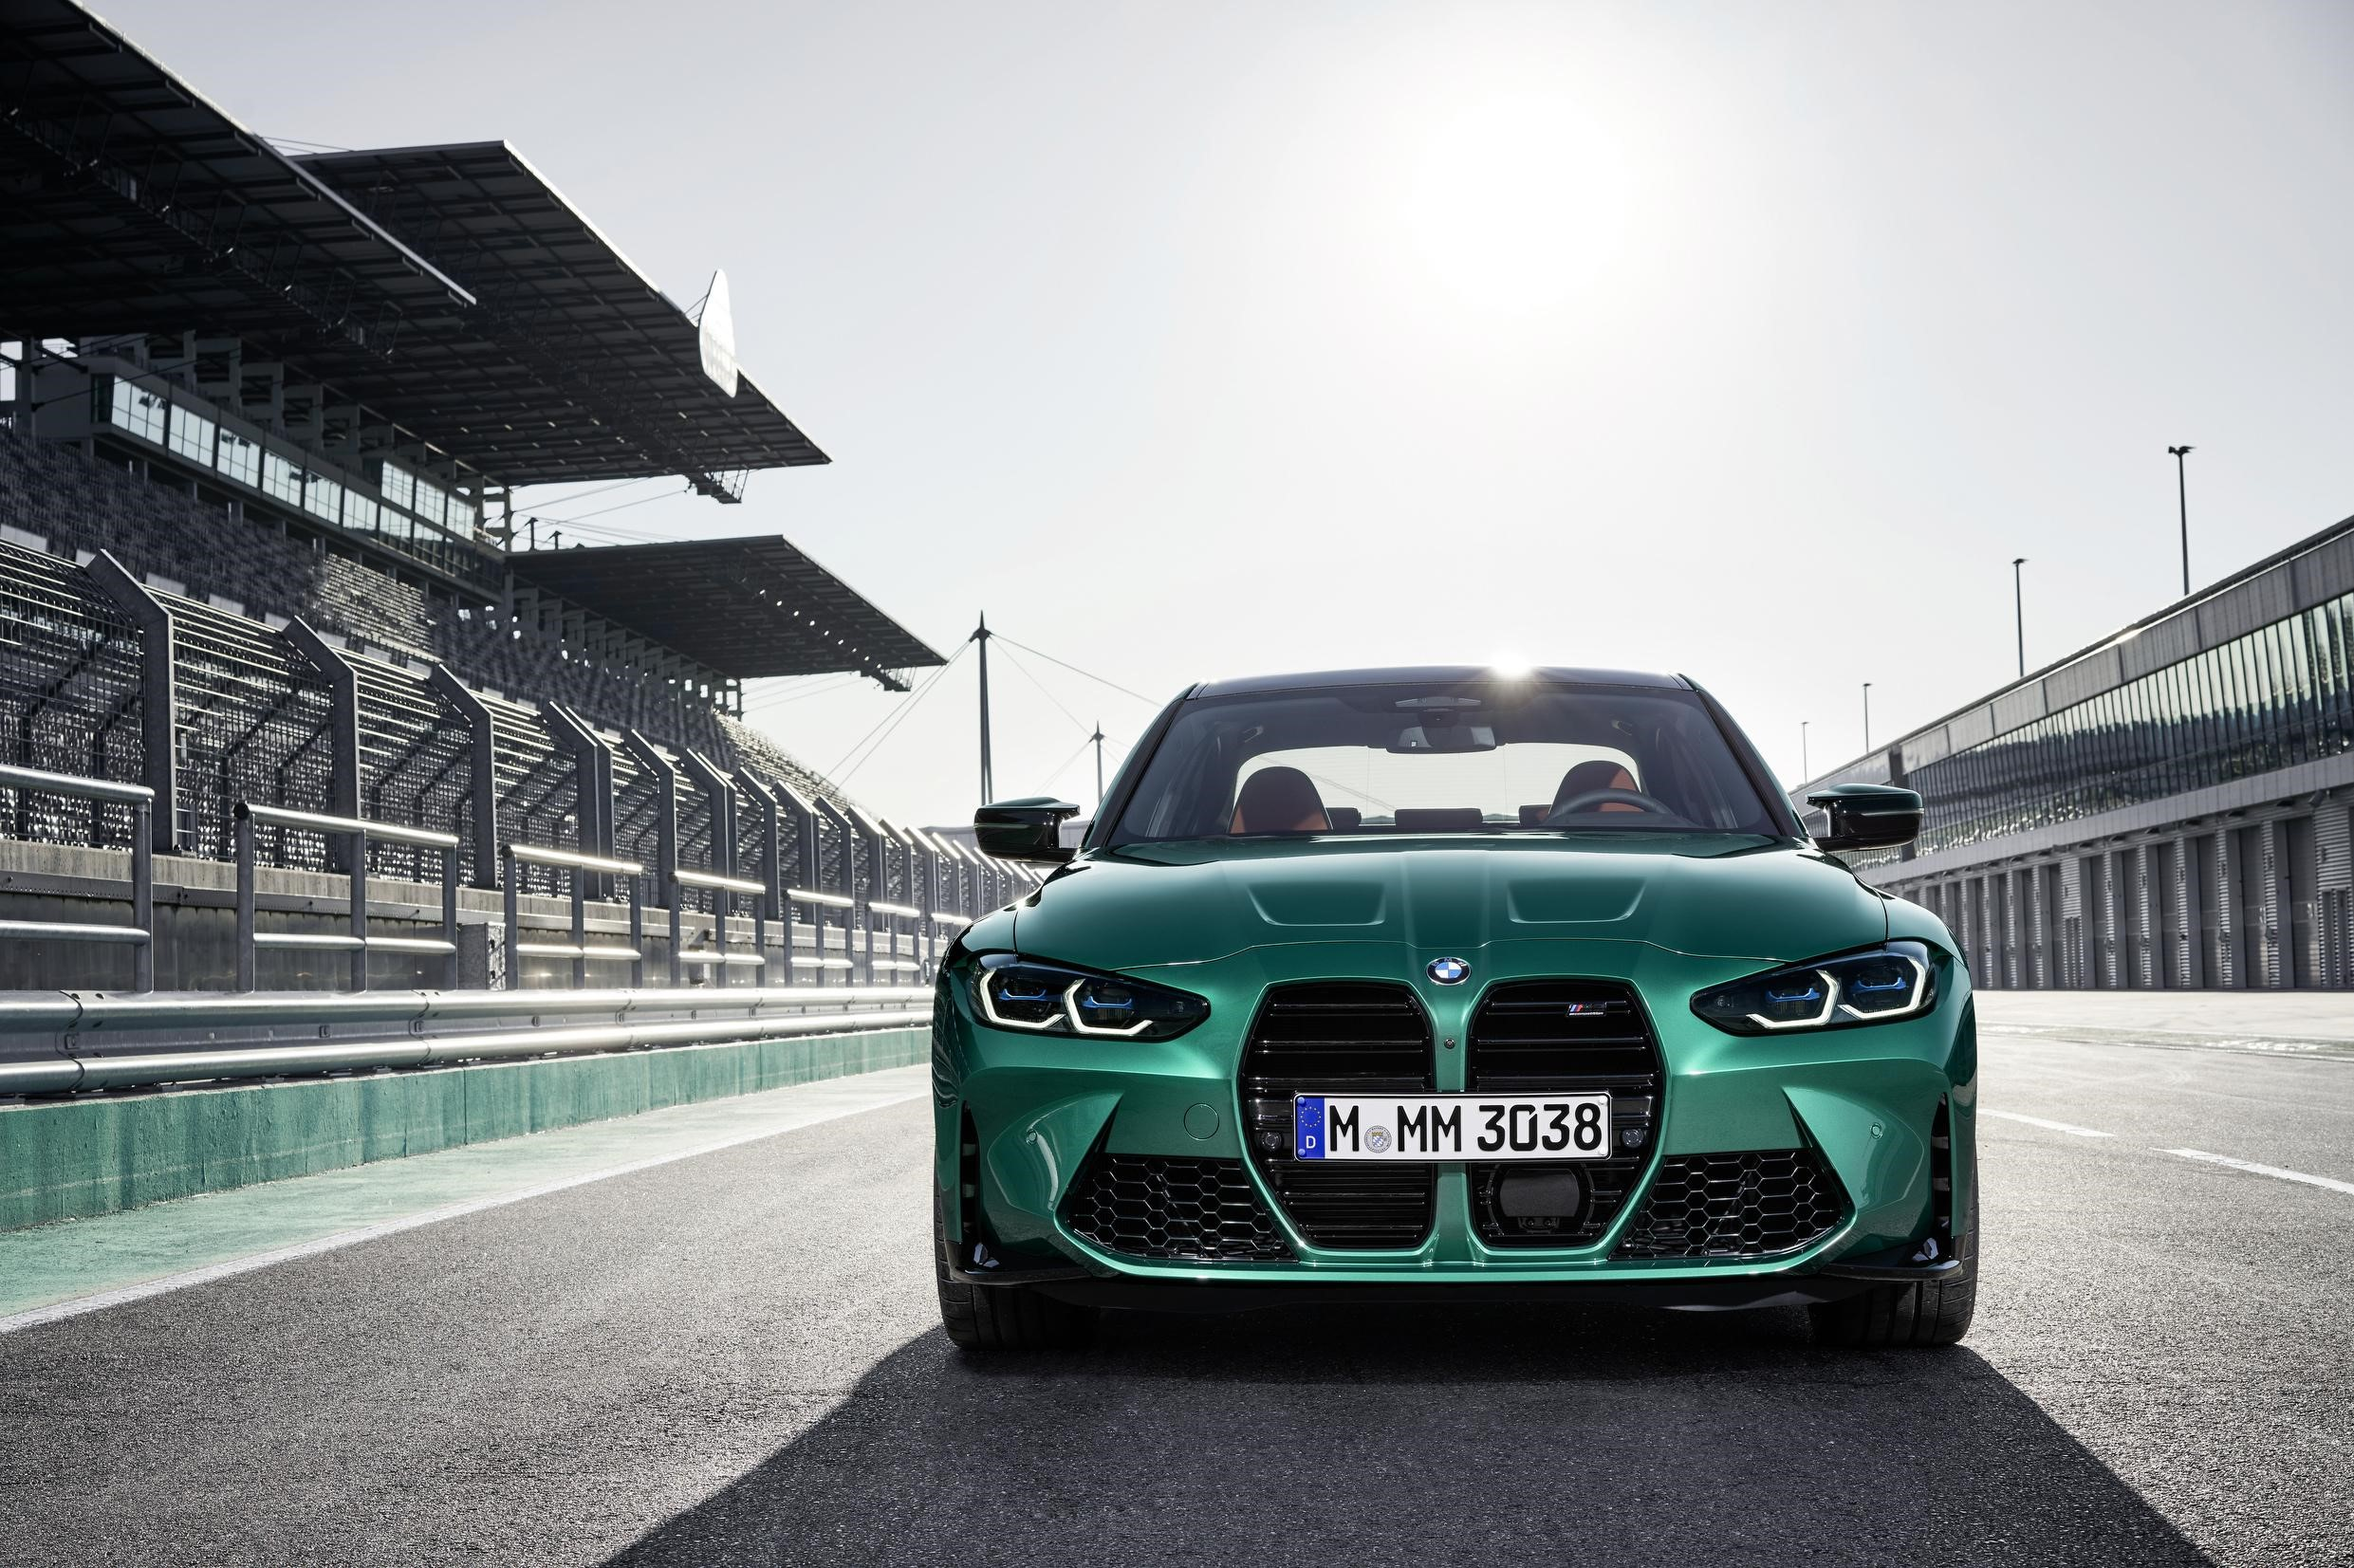 Teal BMW M4 Front Driving